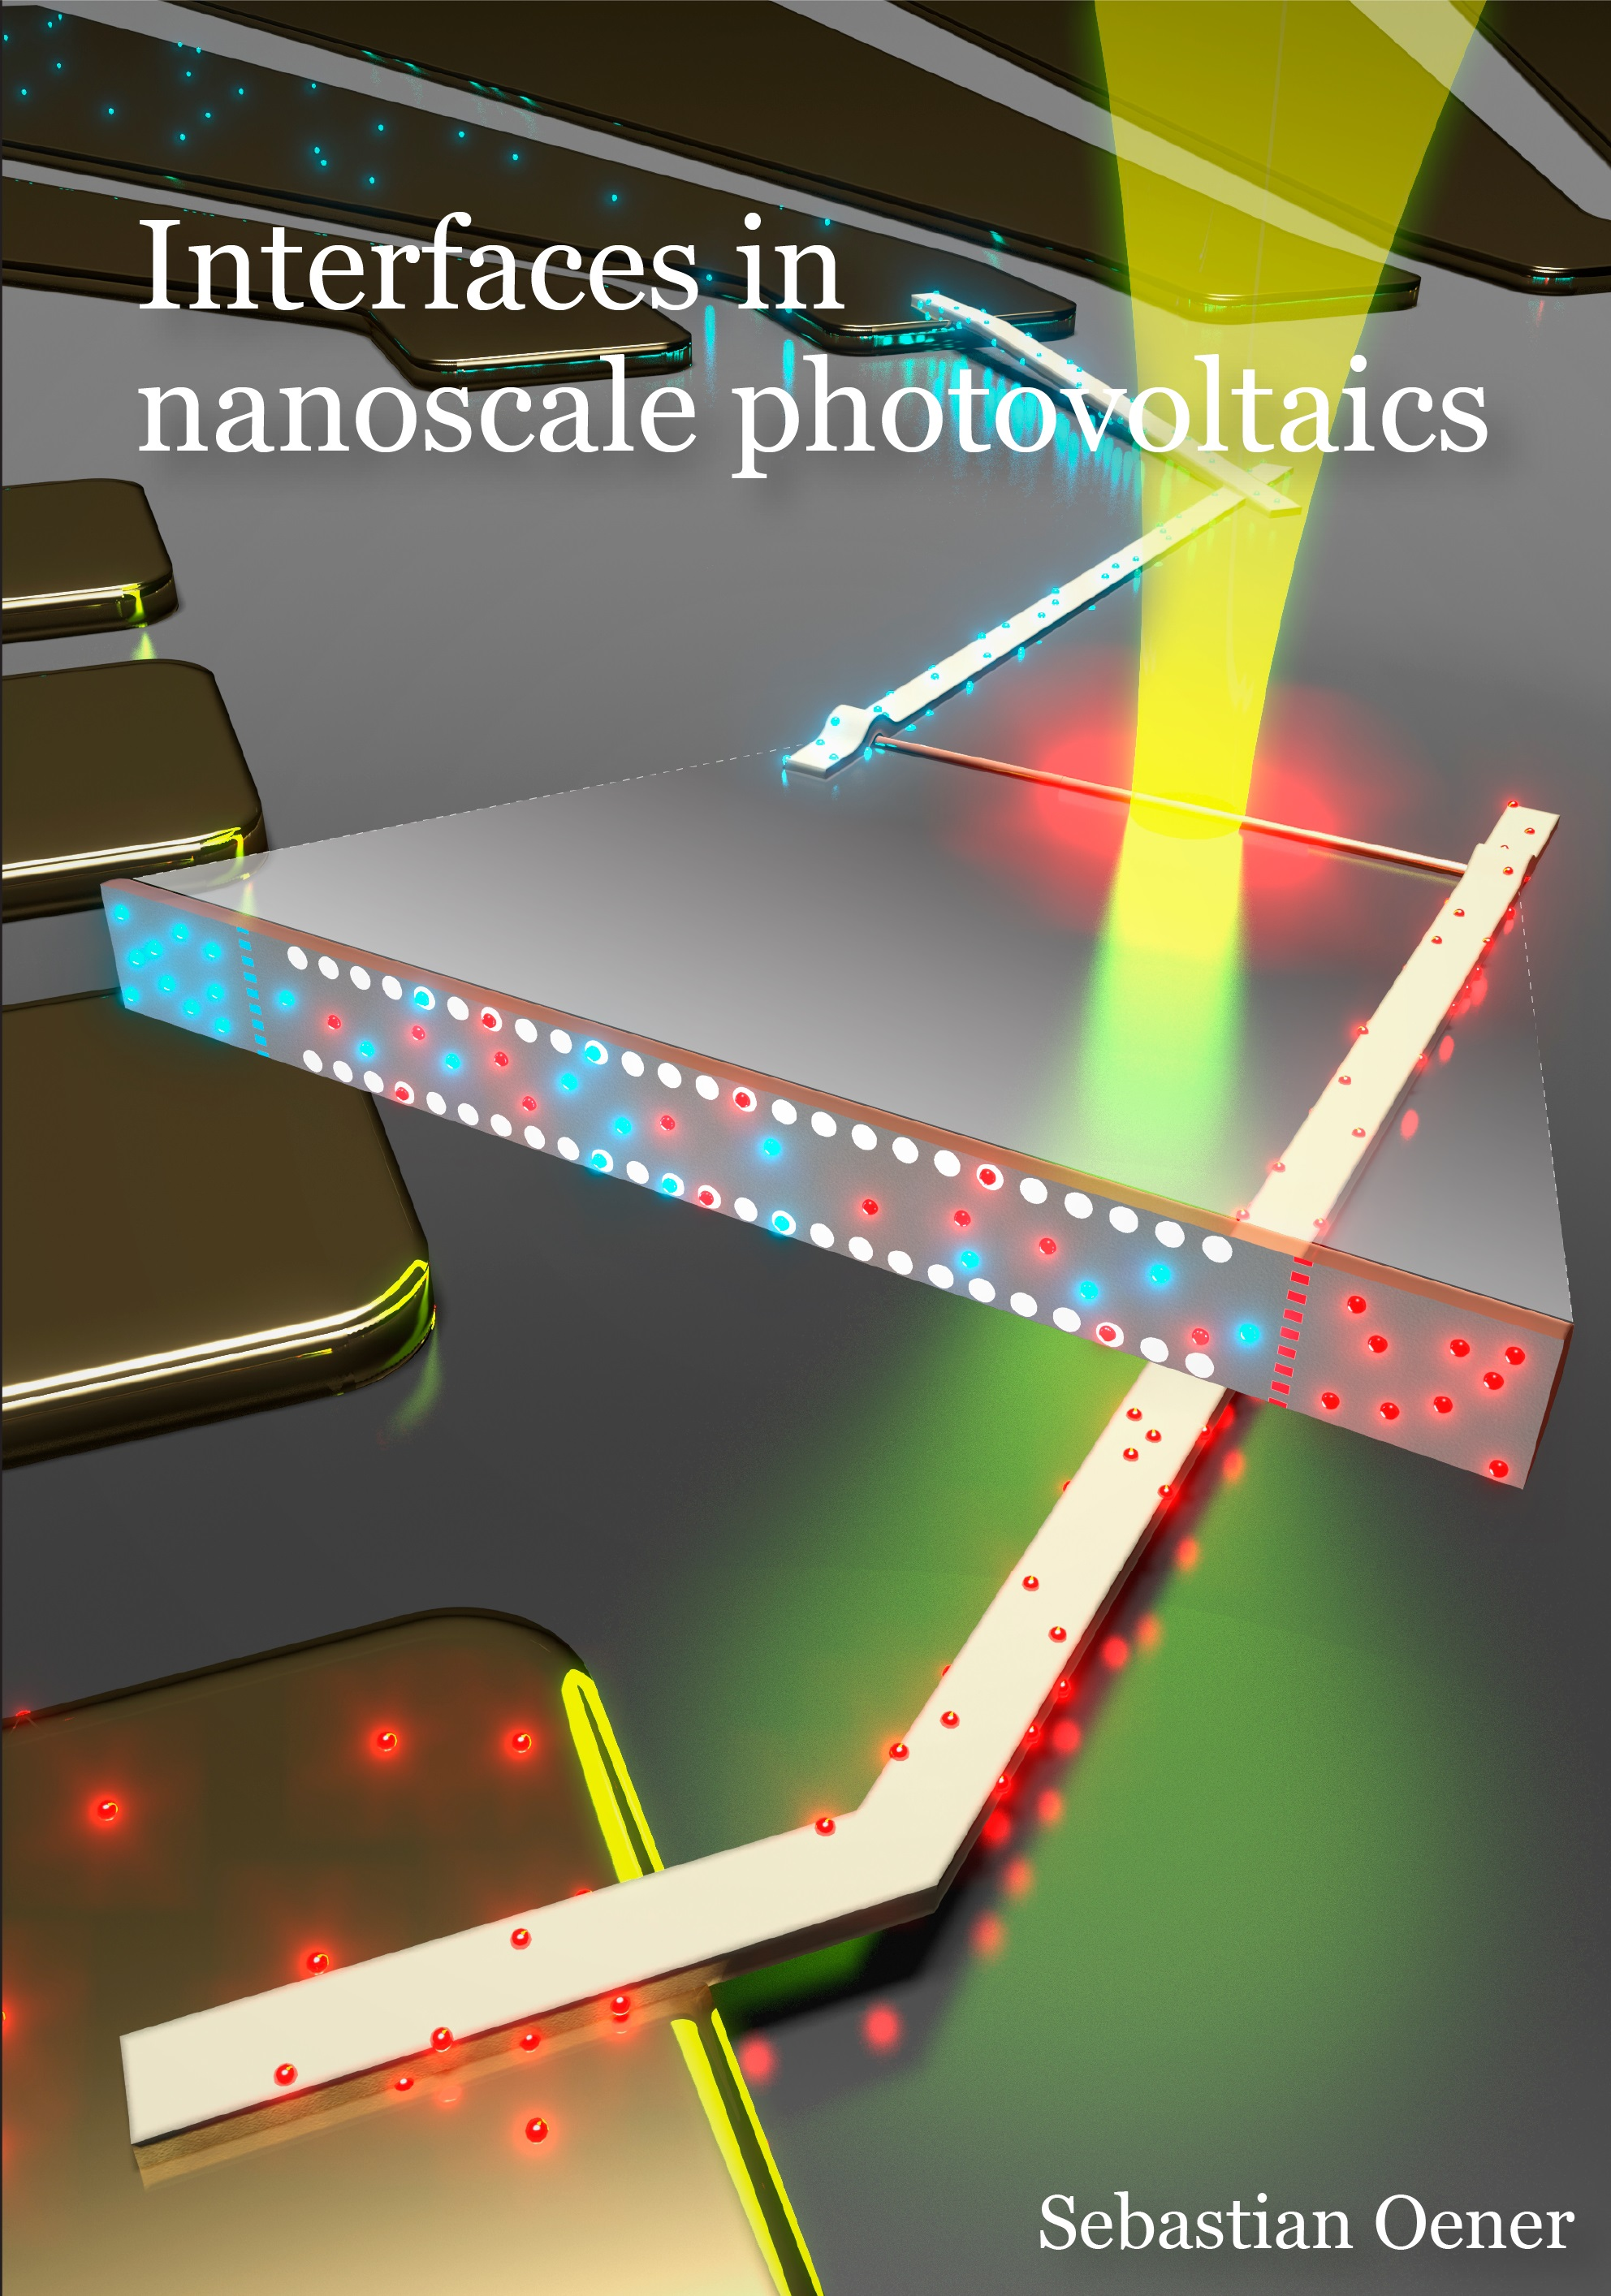 Interfaces in nanoscale photovoltaics